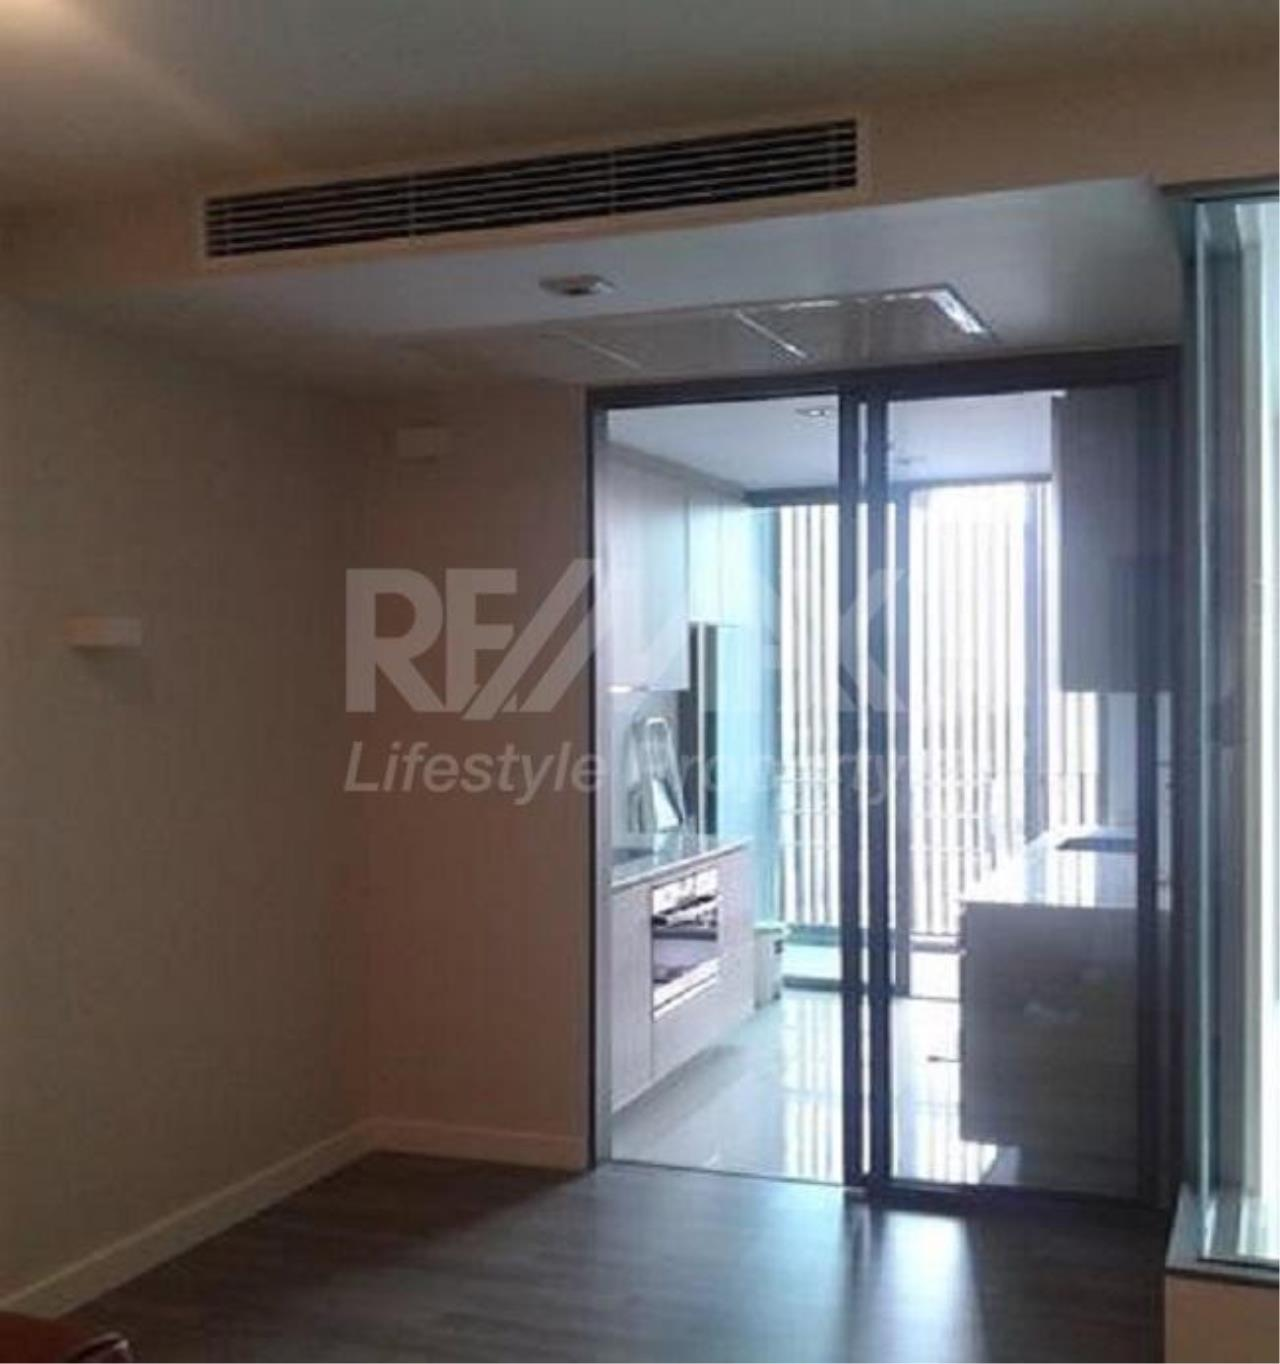 RE/MAX LifeStyle Property Agency's The Room BTS Wongwian Yai 8